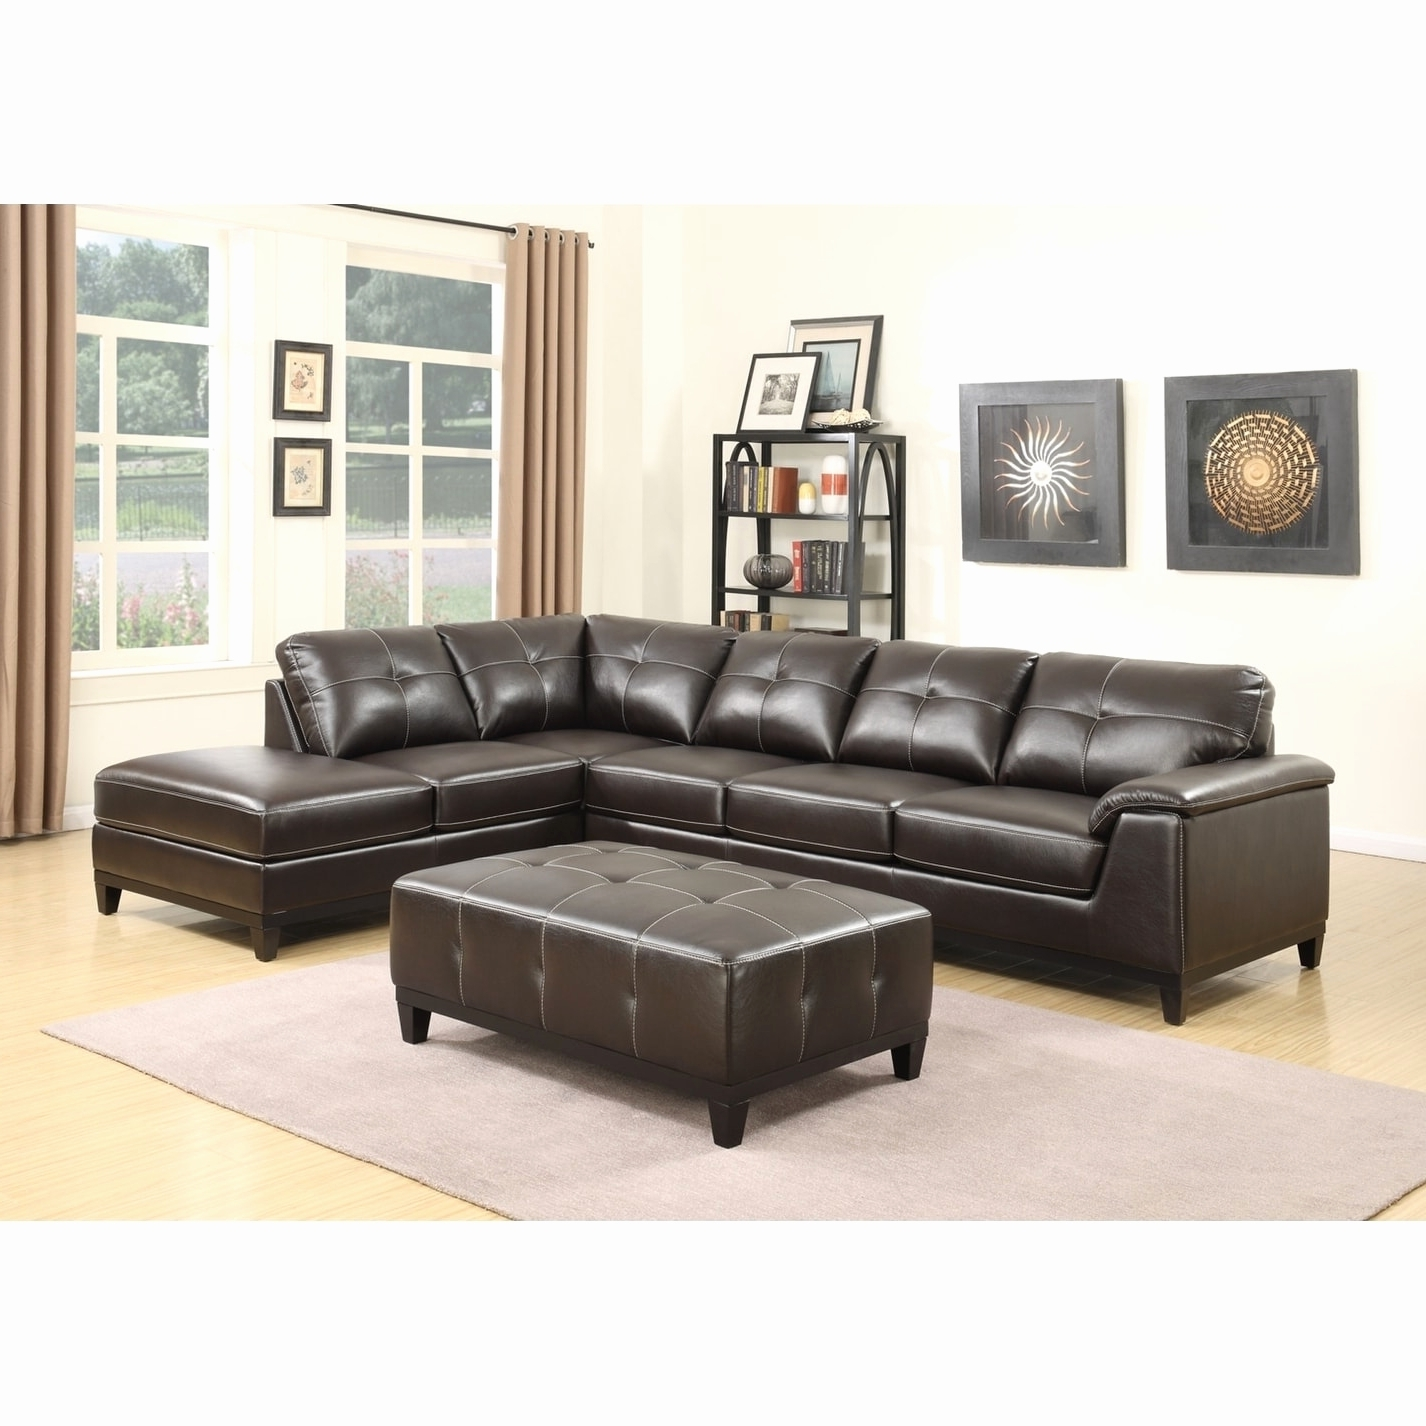 Royal Furniture Living Room Sets Fresh Royal Furniture Living Room With Regard To Widely Used Royal Furniture Sectional Sofas (View 14 of 20)